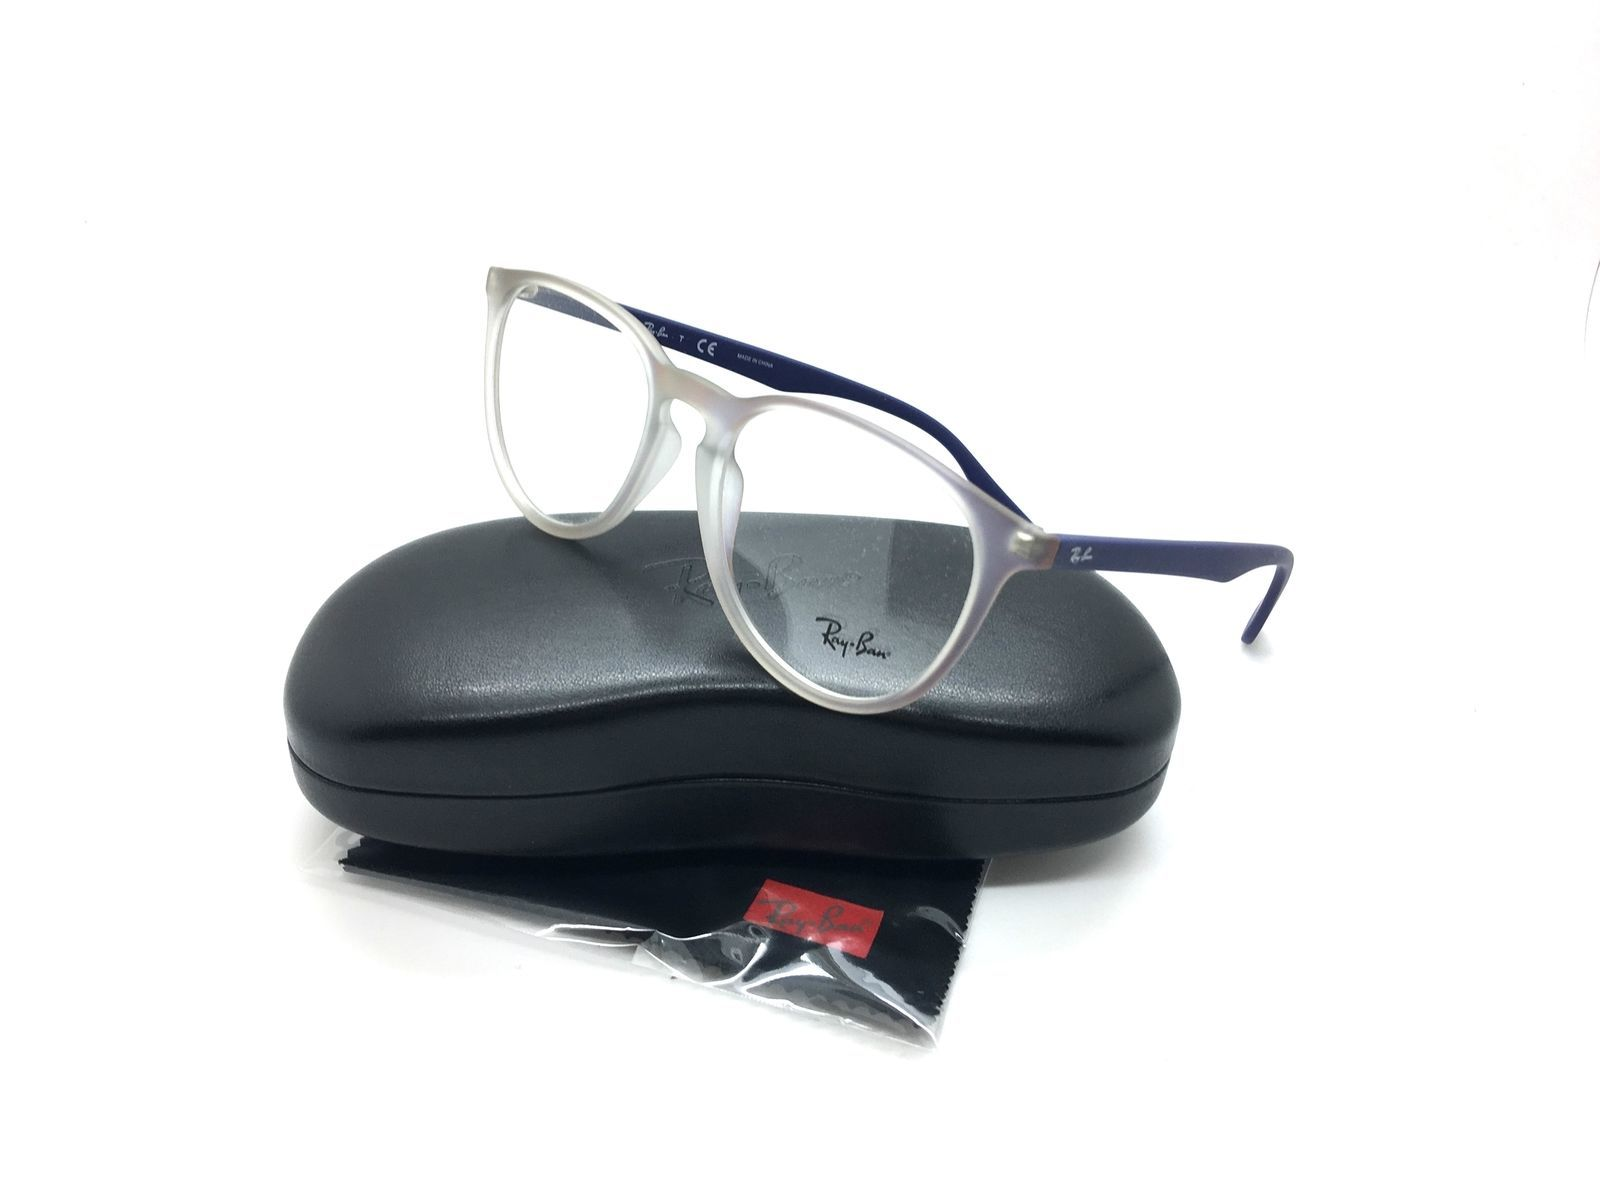 decf9d3e5e Ray Ban Violett Brille RB 7046F 5486 55 mm RX7046 Demo Brillengläser